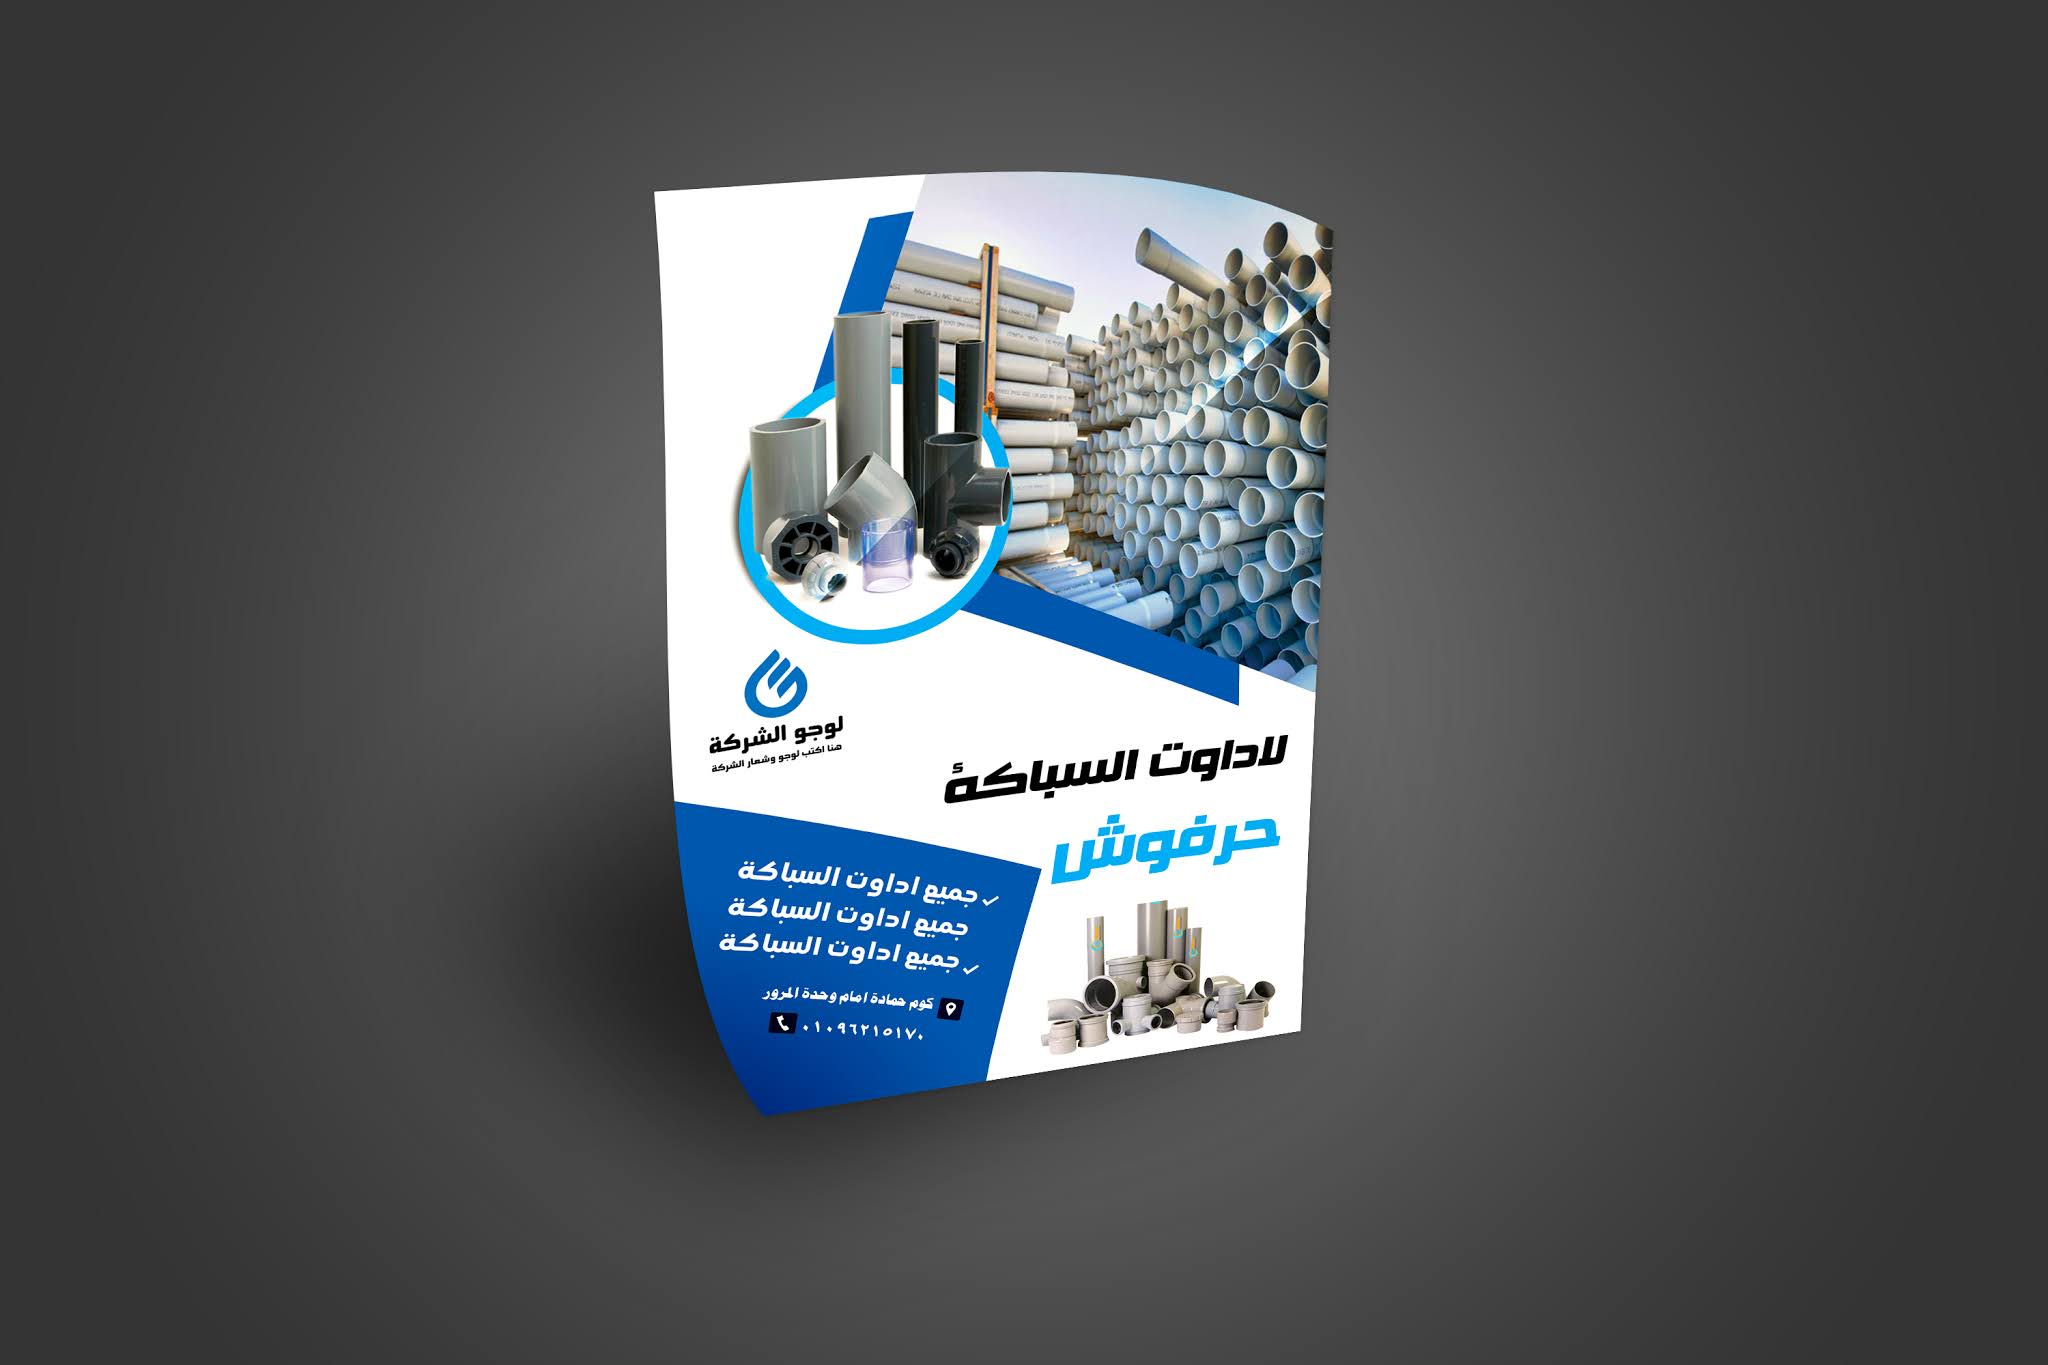 Professional flyer psd design for plastic piping industries products